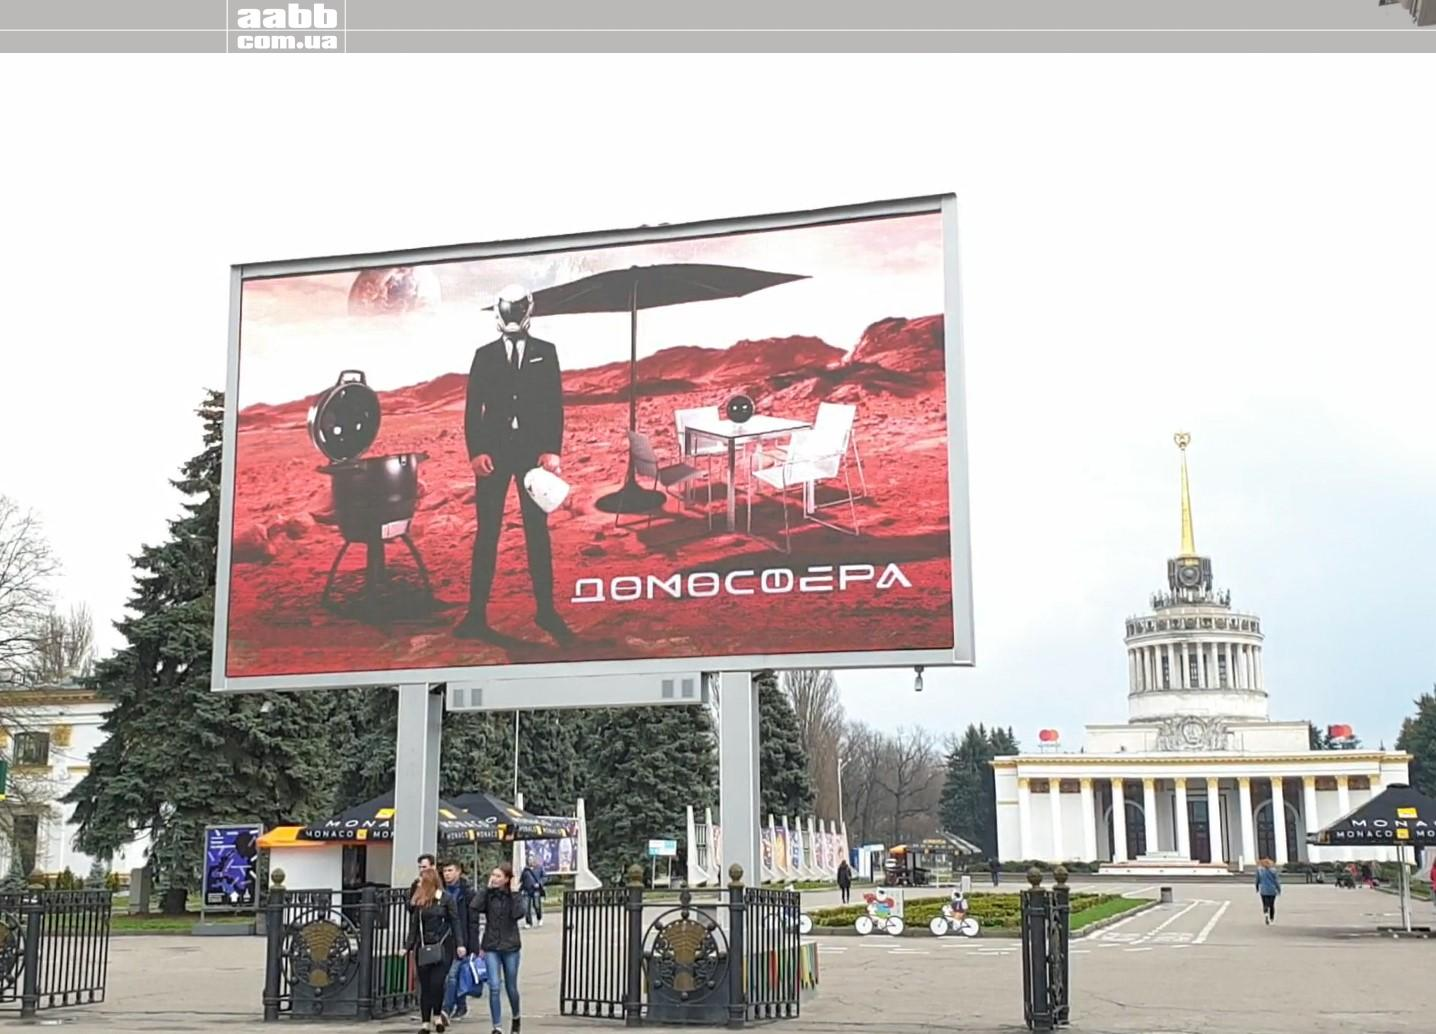 VDNG videoboard advertisement (April 2019)